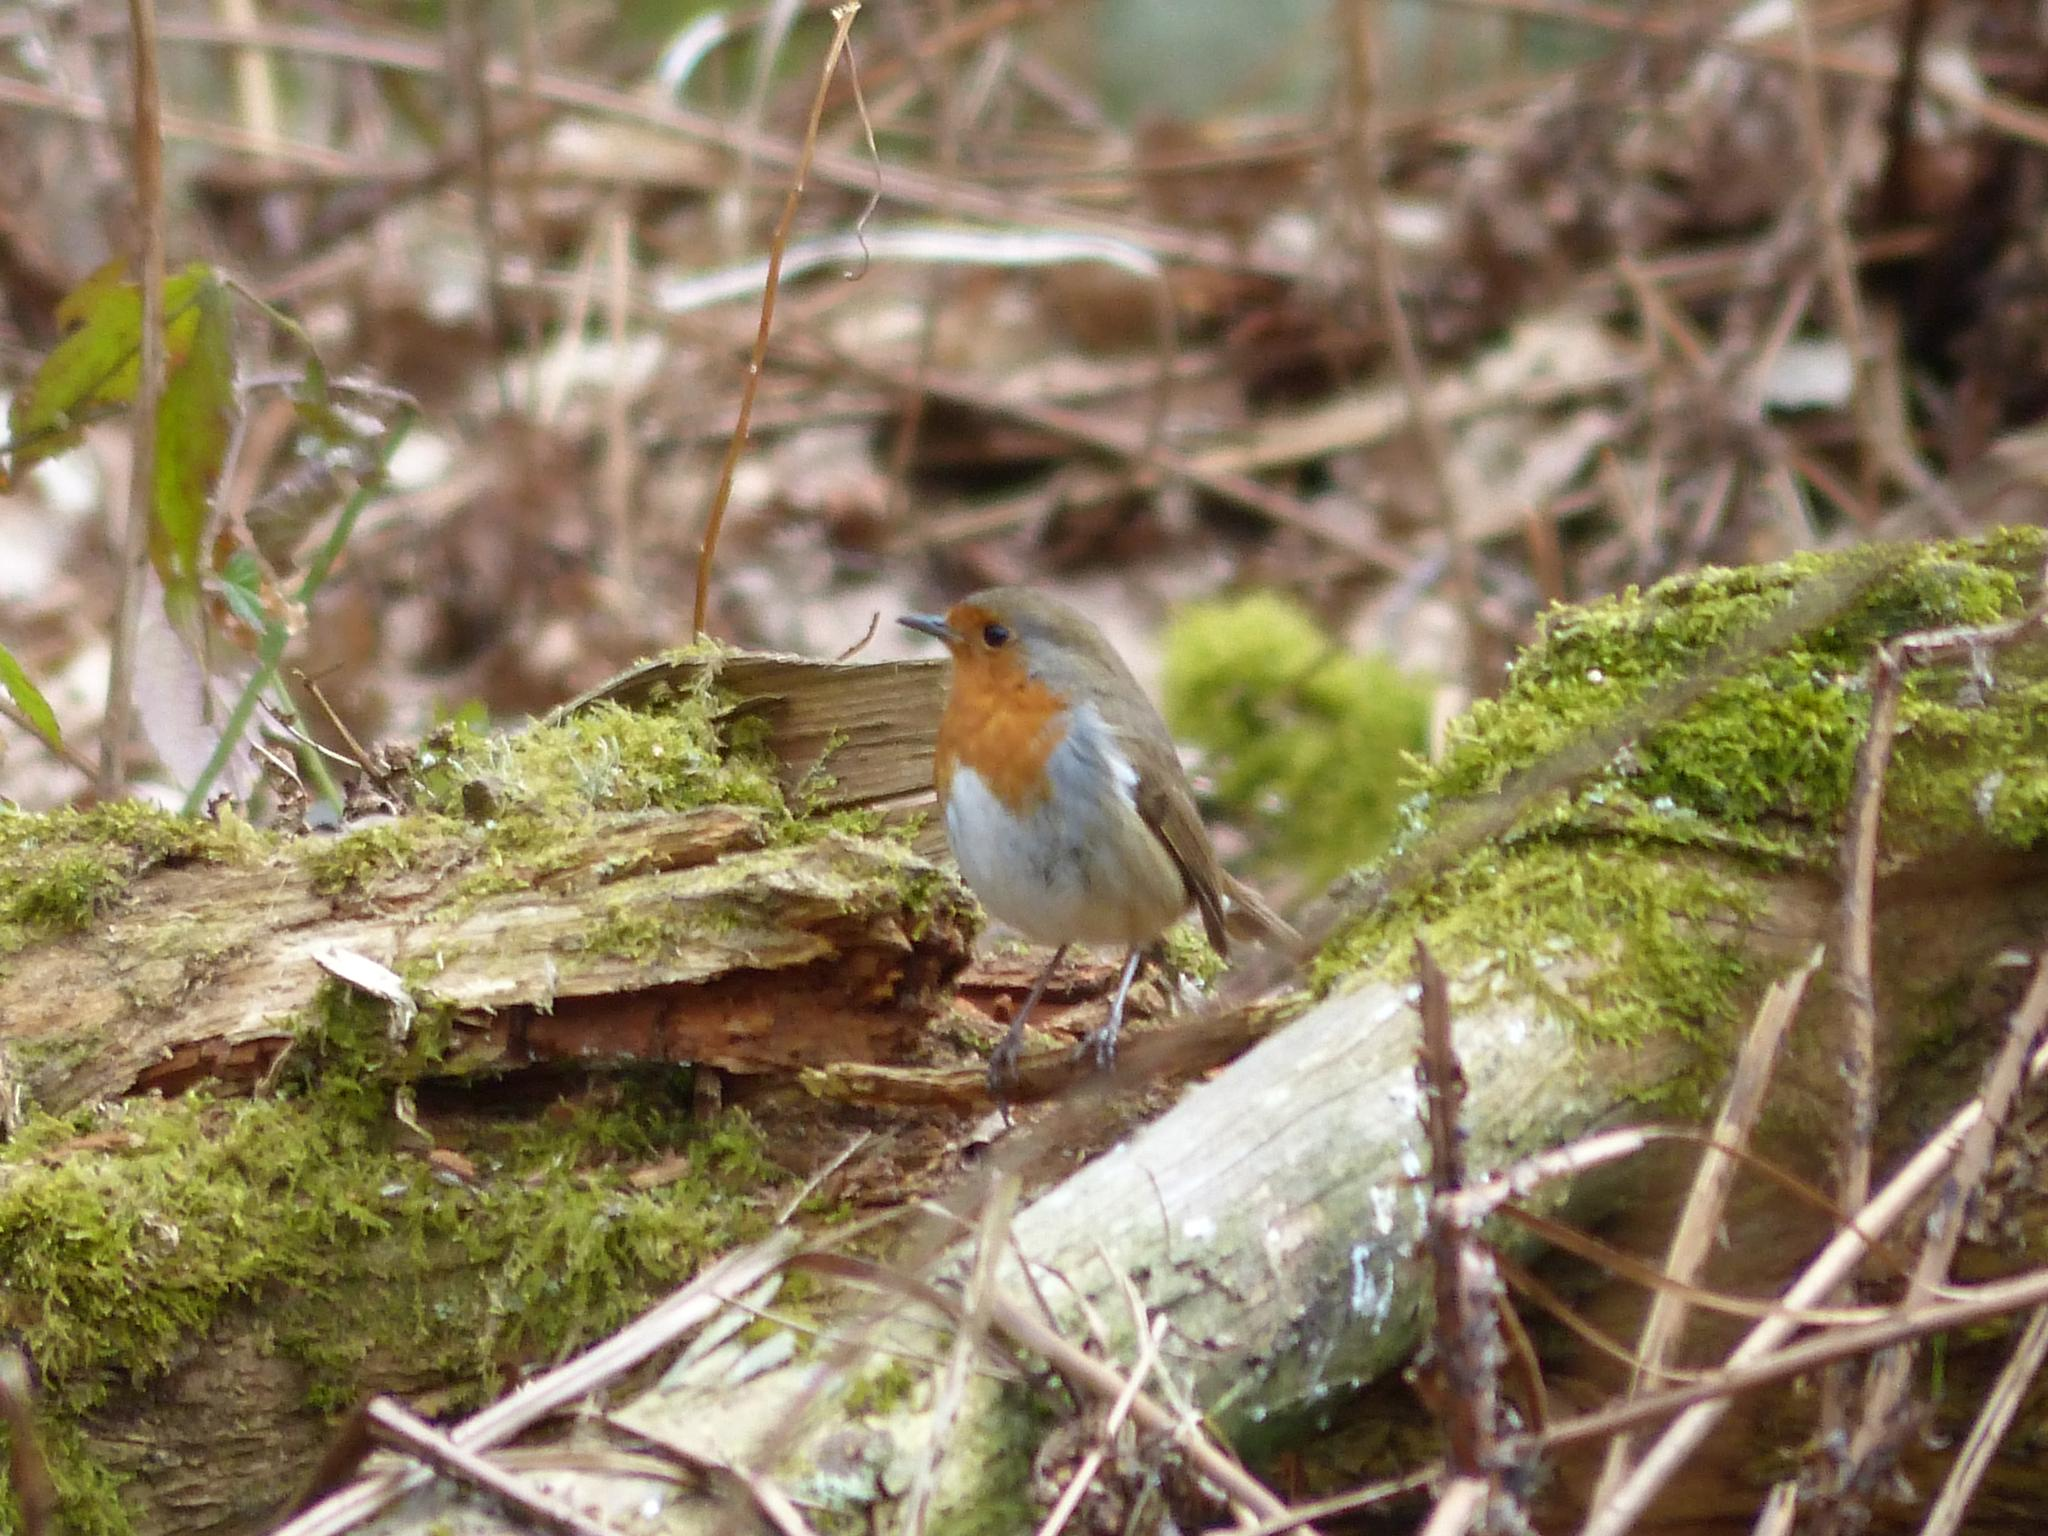 Robin in Owlet Woods by wendy.west.9212